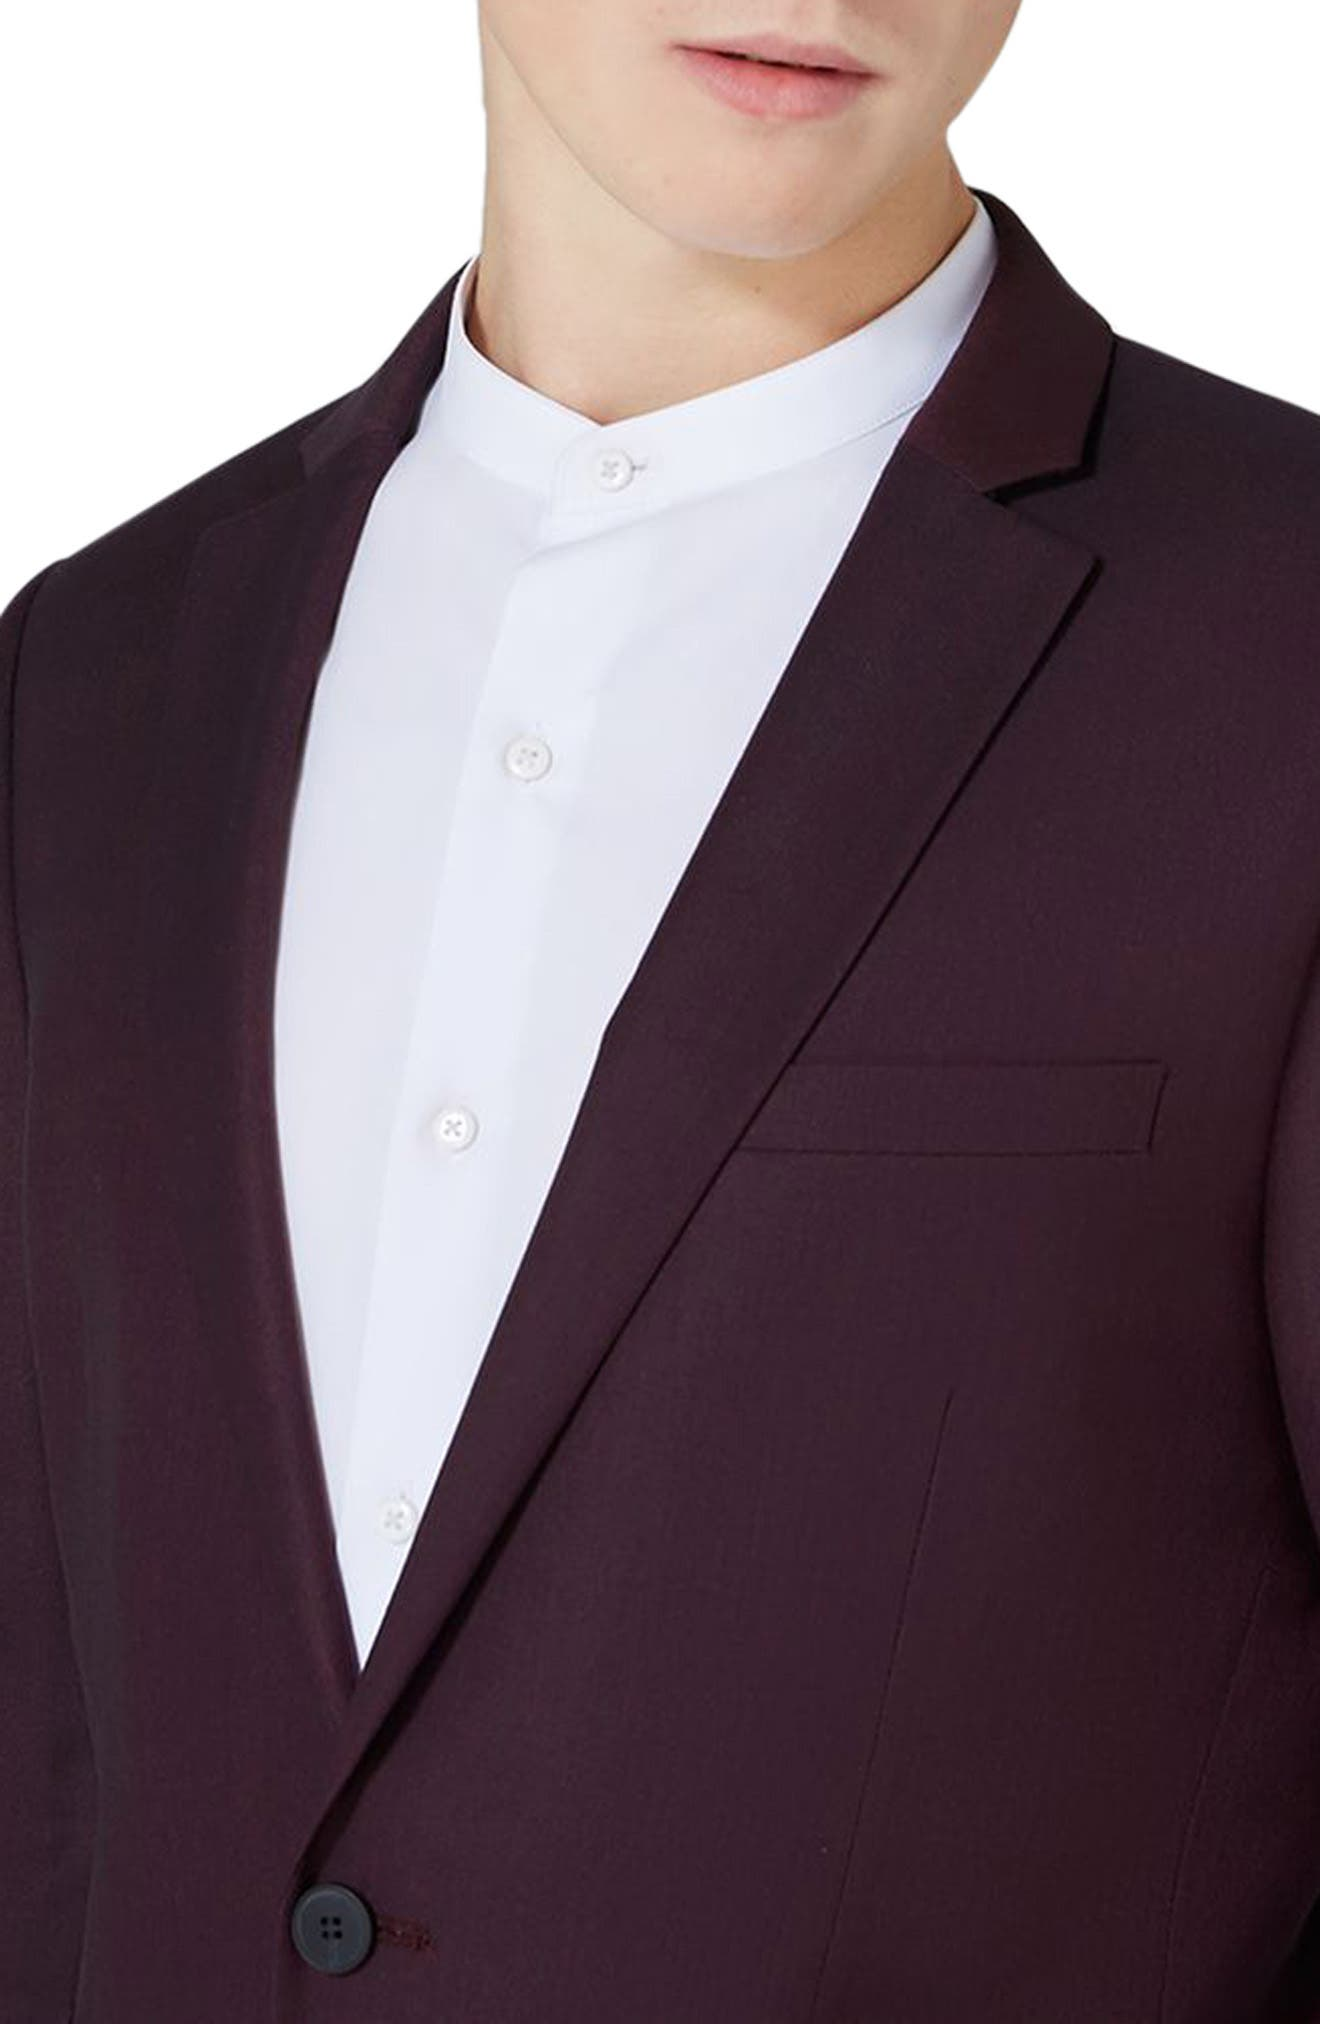 Skinny Fit Plum One-Button Suit Jacket,                             Alternate thumbnail 4, color,                             Plum